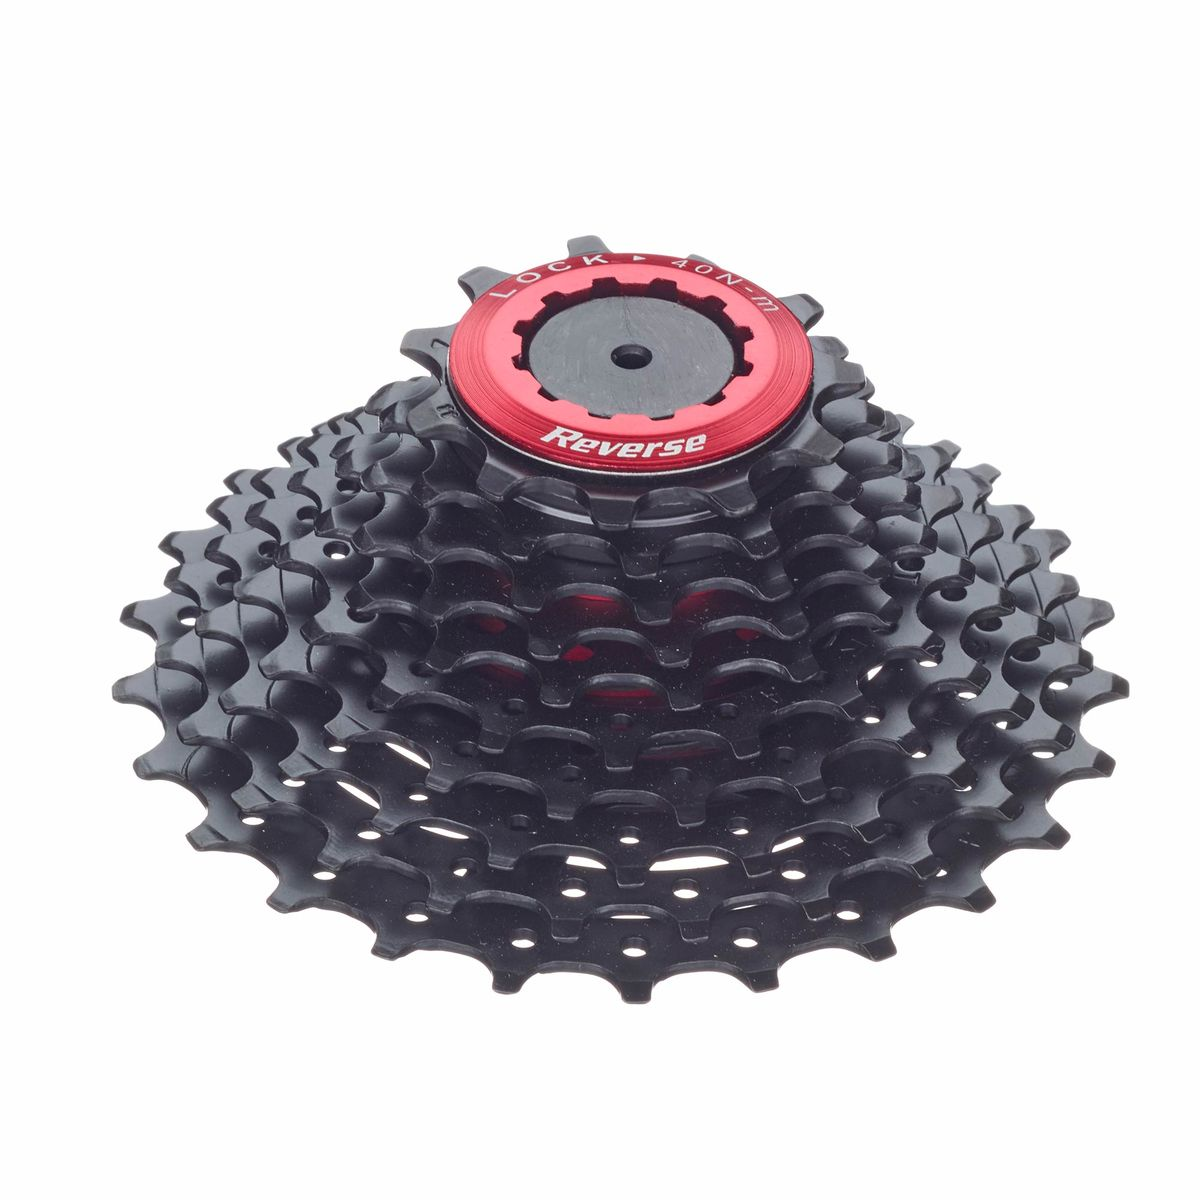 DH 7-/10-speed cassette